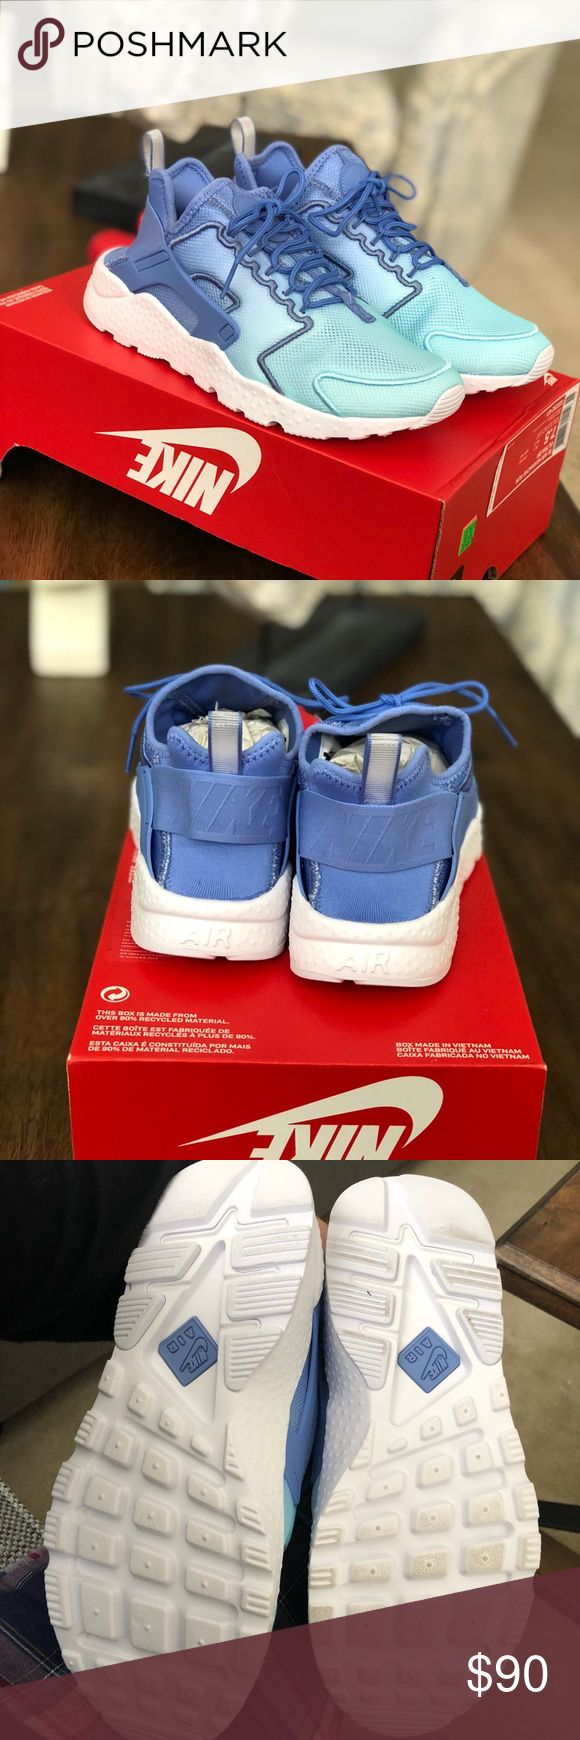 Women's Nike air huarache run ultra Polar white and blue women's Nike huarache run , size 7.5 , brand new never worn with box no lid . Ships same day or next day . Please use offer tab if making and offer :) thanks Nike Shoes Sneakers